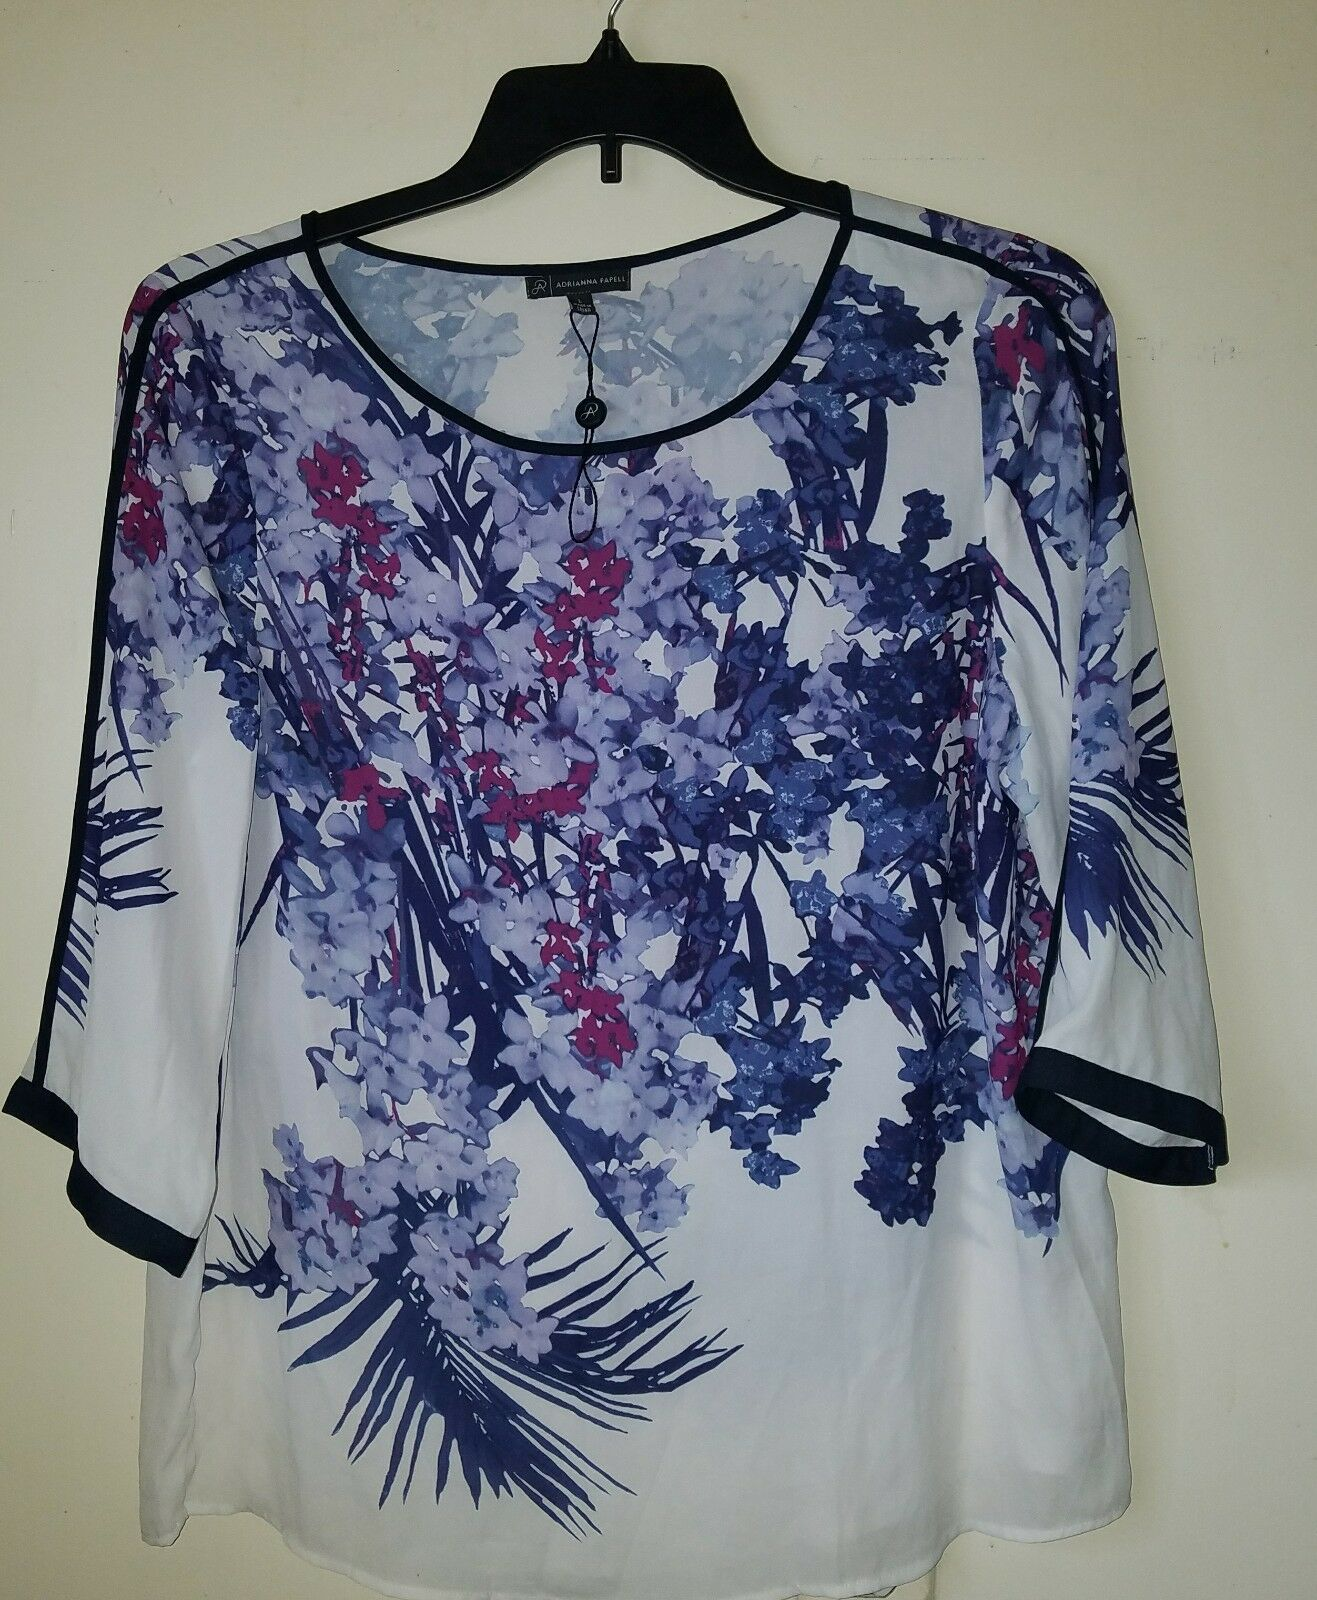 NWOT Adriana Papell damen' s Multi-Farbe Sheer Floral 3 4 Sleeve Blouse Sz L